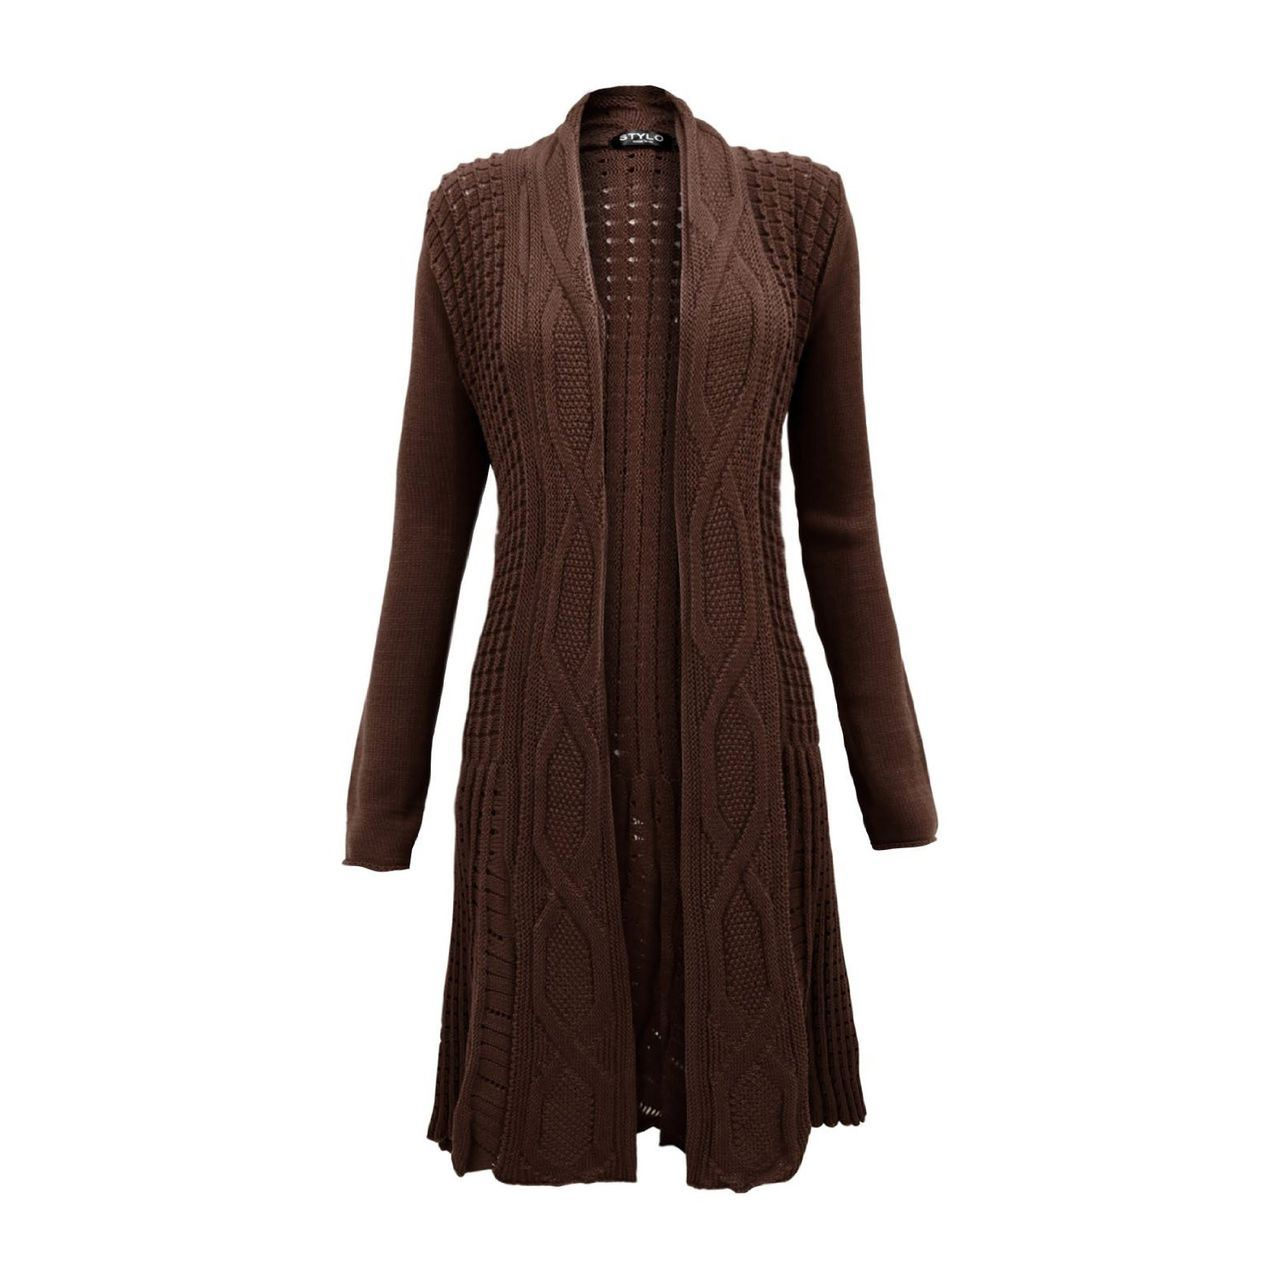 Knitted Boyfriend Open Front Cardigan Top Dress Ladies Womens Cable Knit Jumper